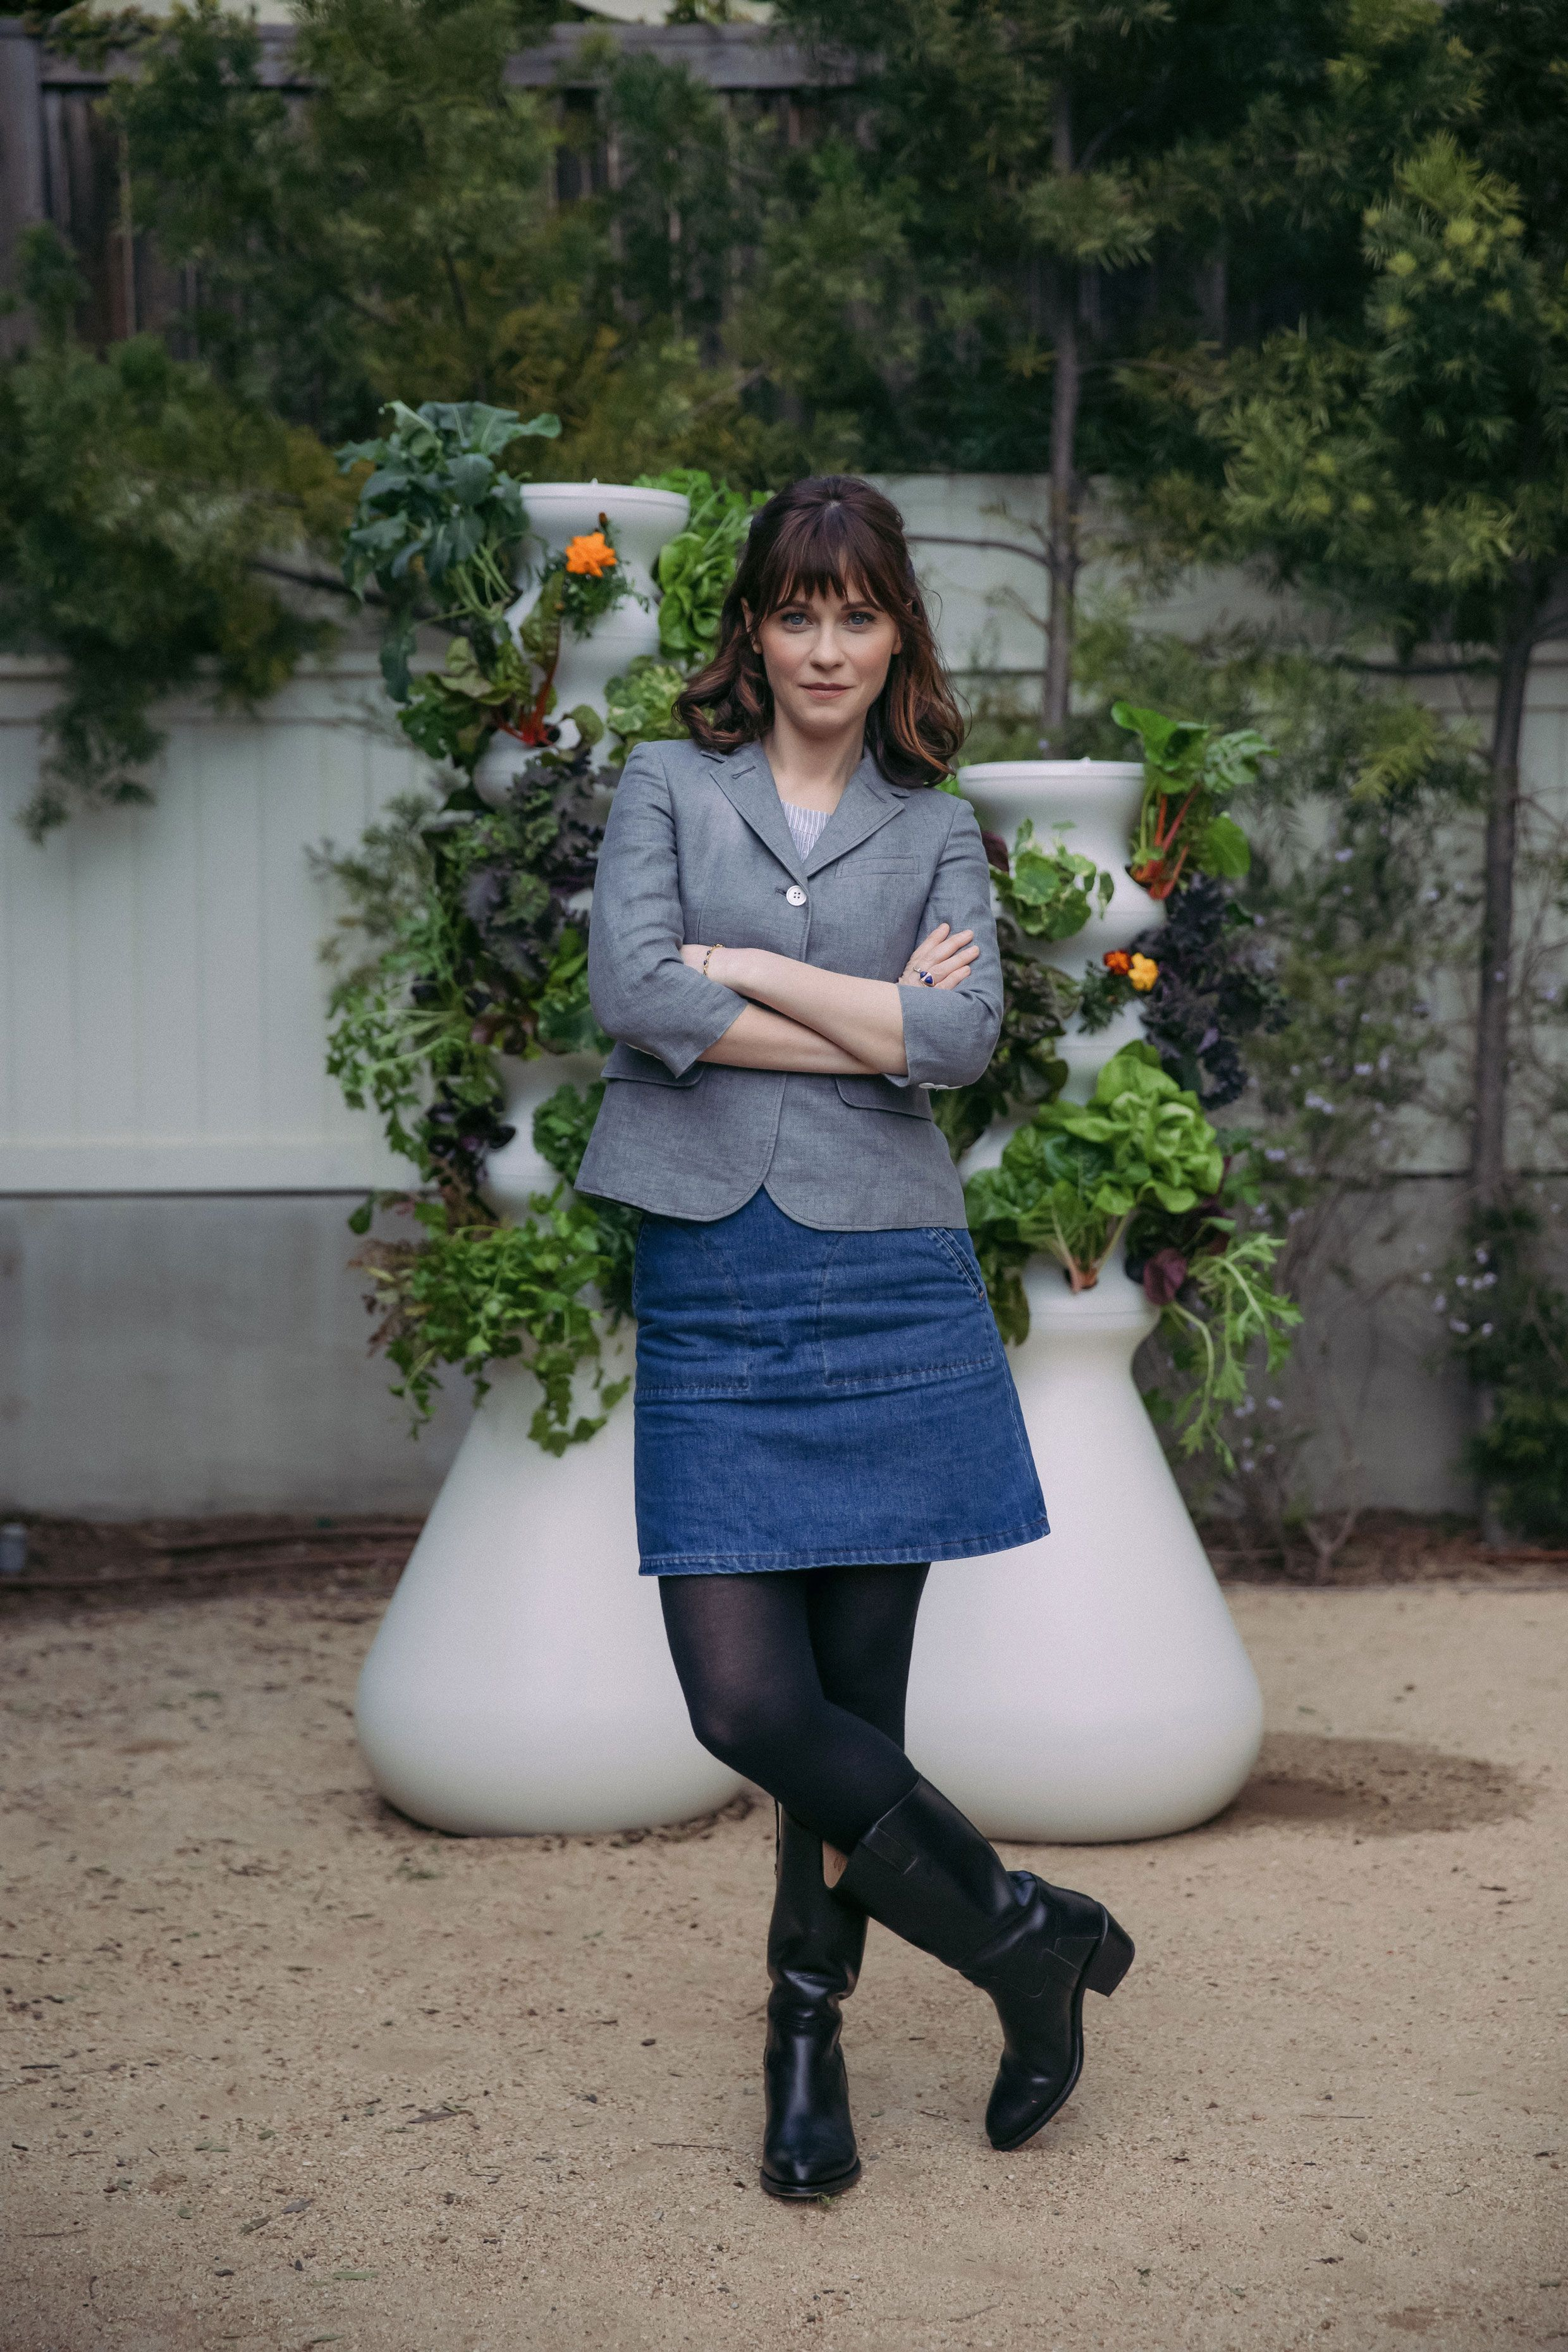 Why Zooey Deschanel and Jacob Pechenik Are Selling Portable Gardens